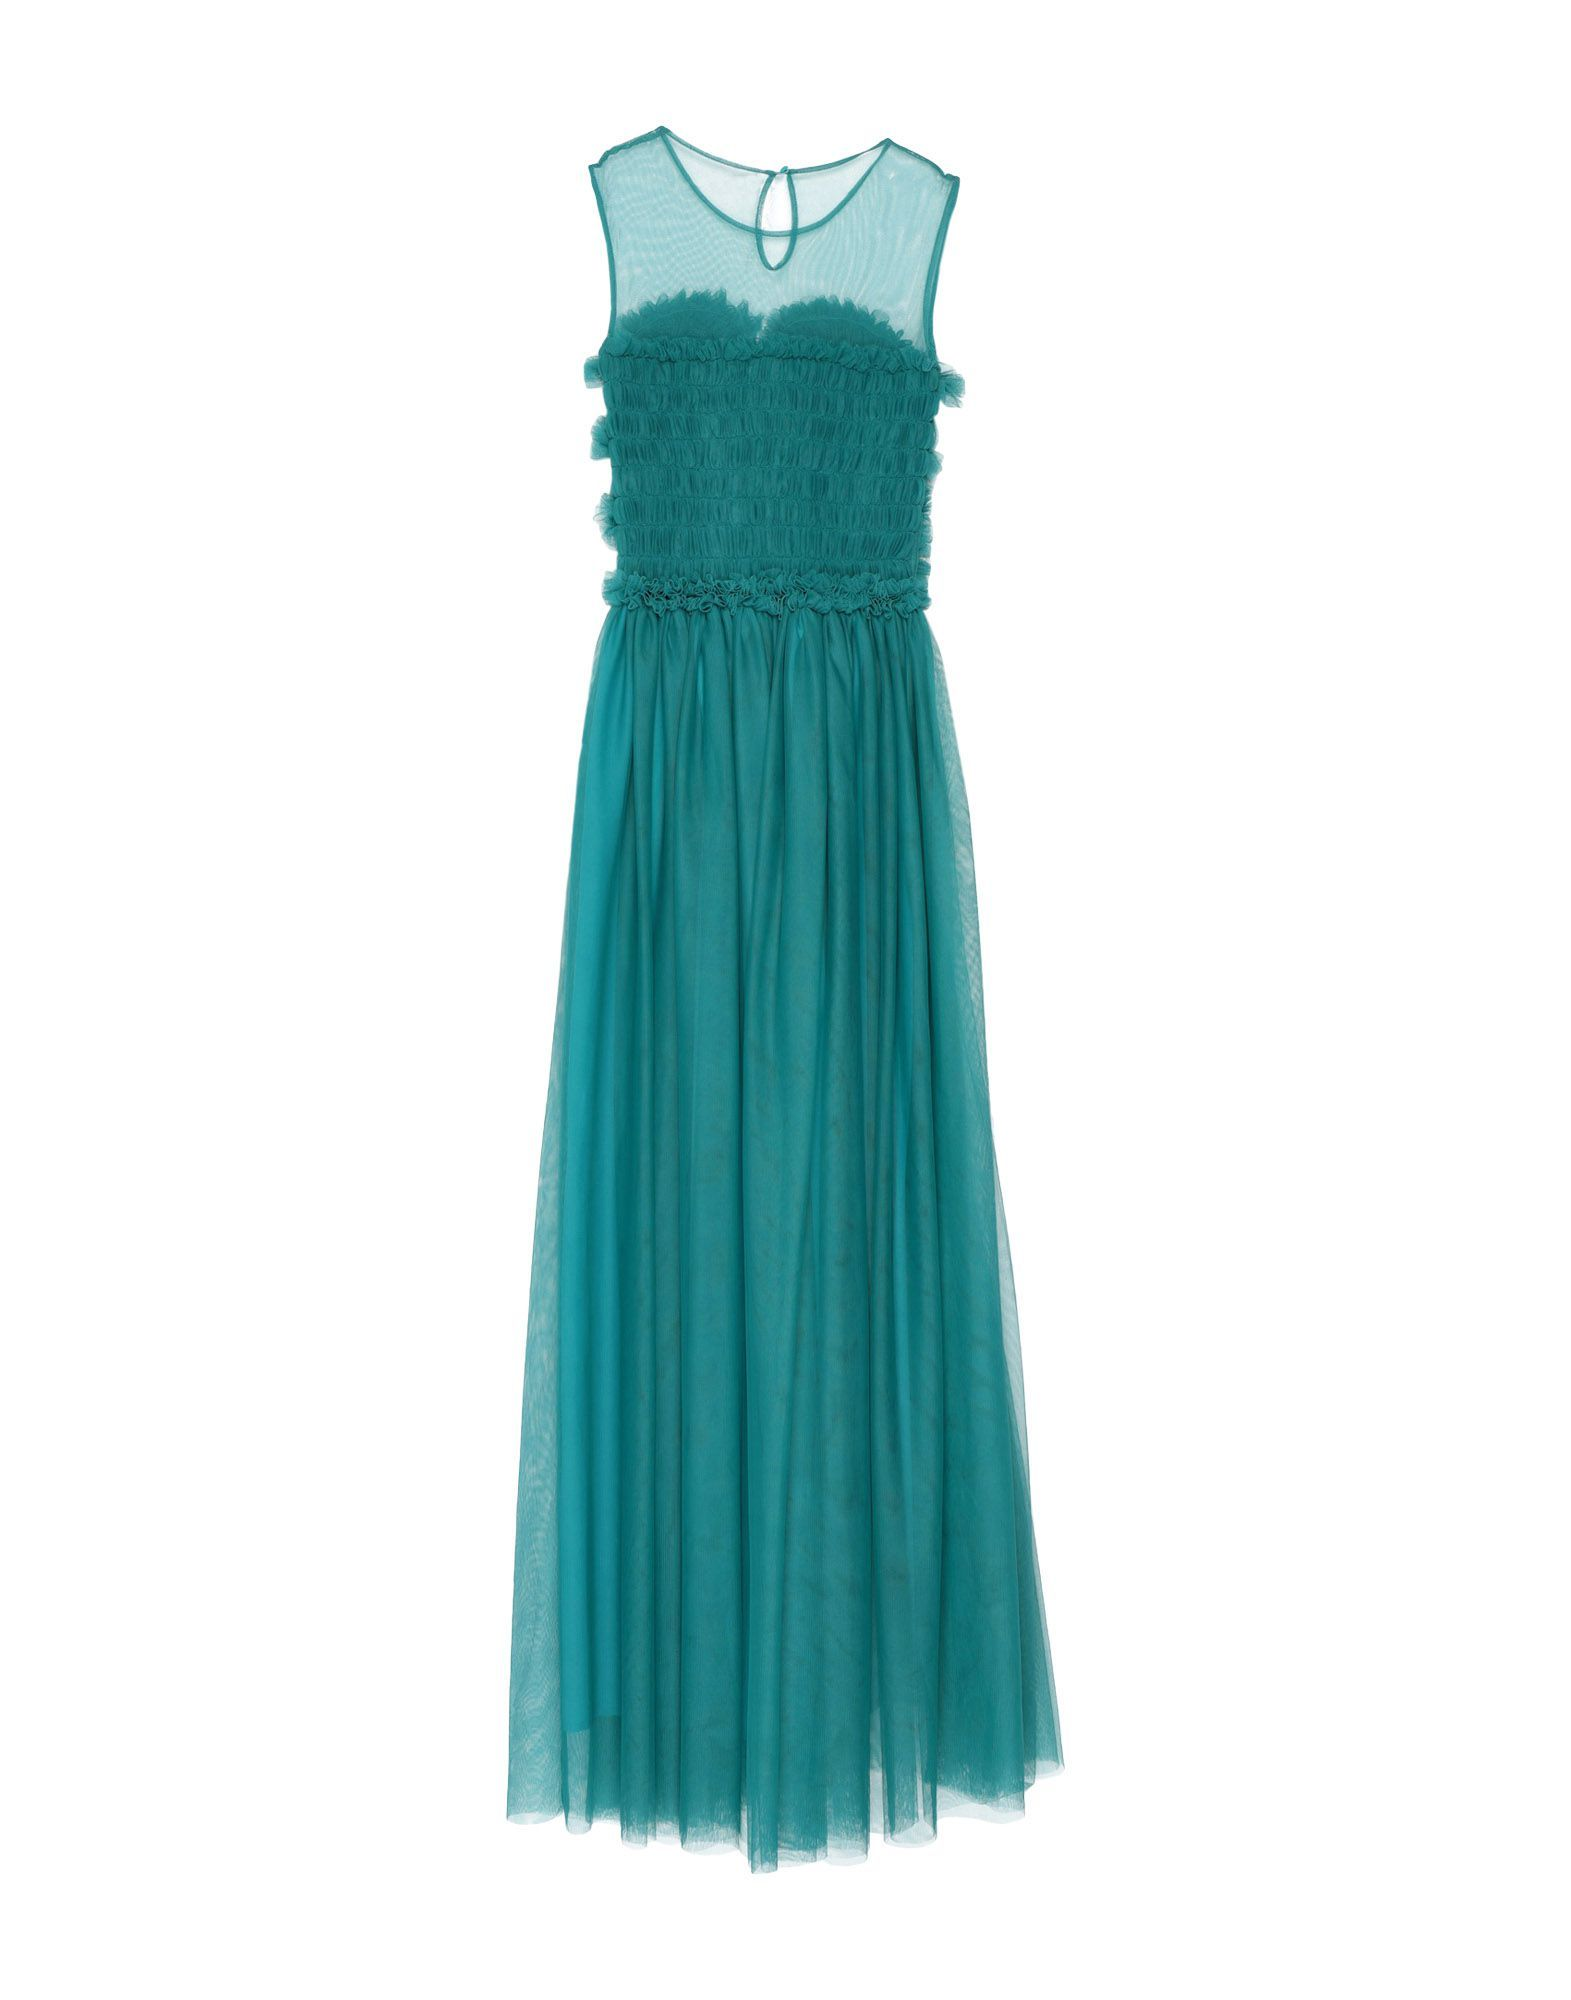 P.A.R.O.S.H. Deep Jade Tulle Full Length Dress